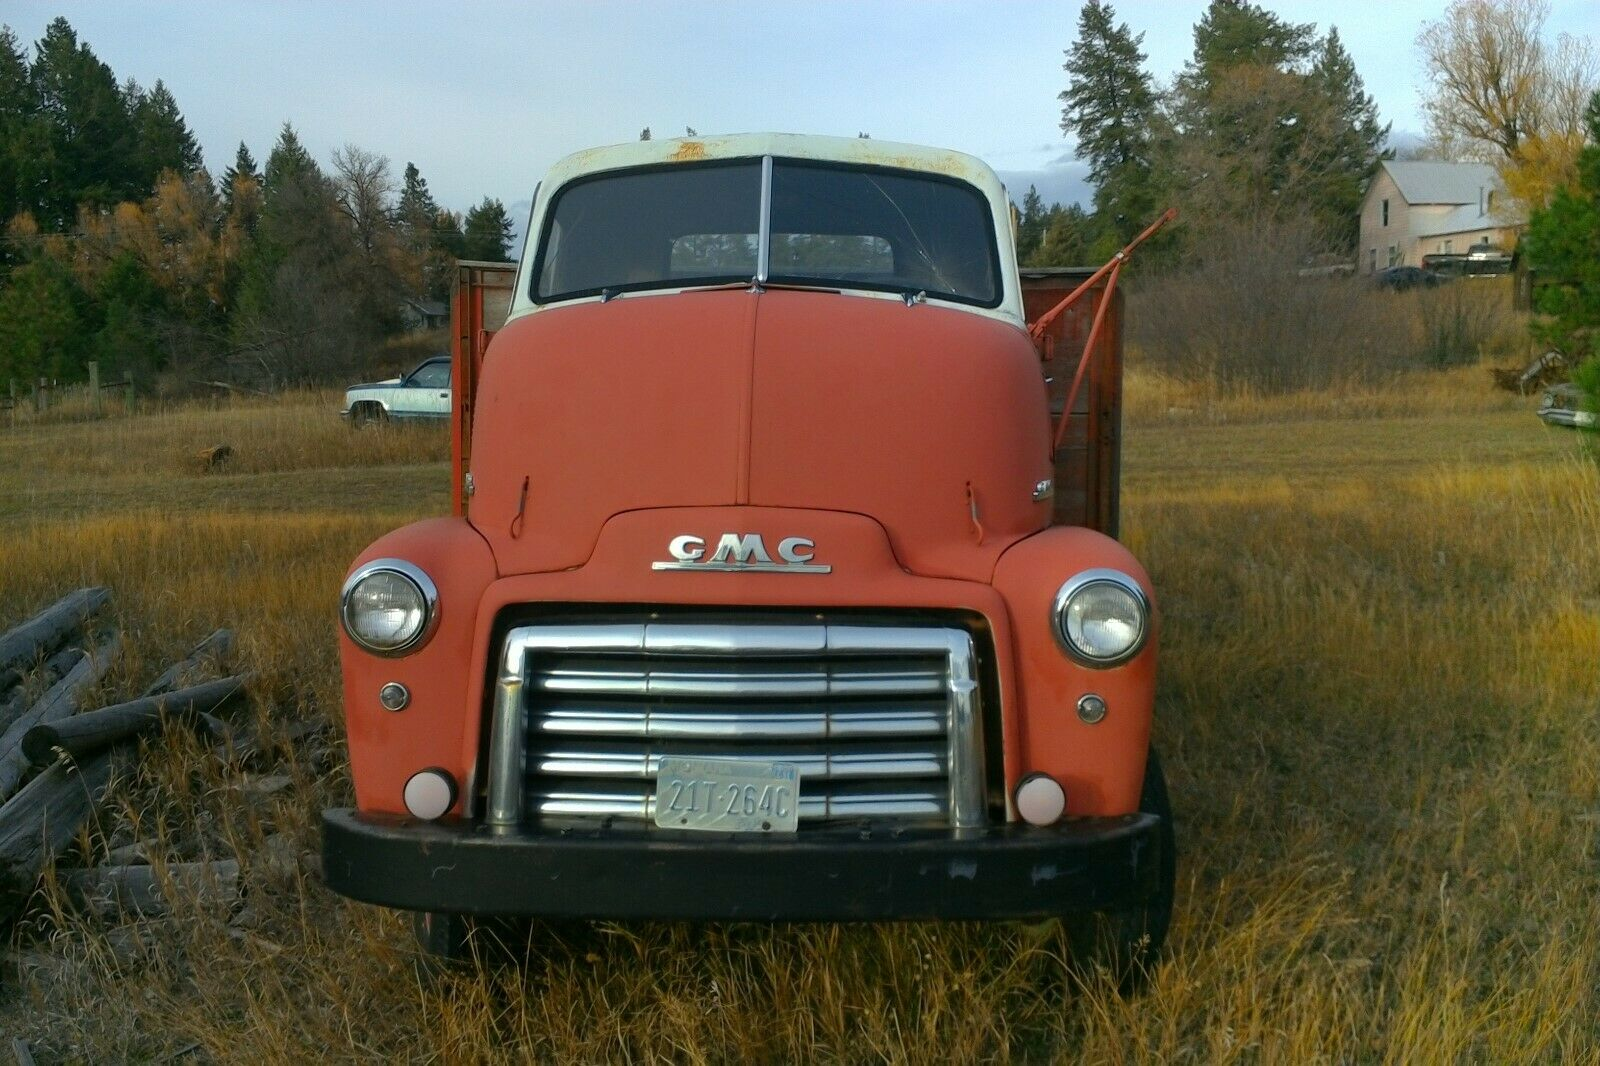 Cabover Trucks For Sale >> 1948 Gmc Coe Cabover Truck Original Farm Barn Find Solid